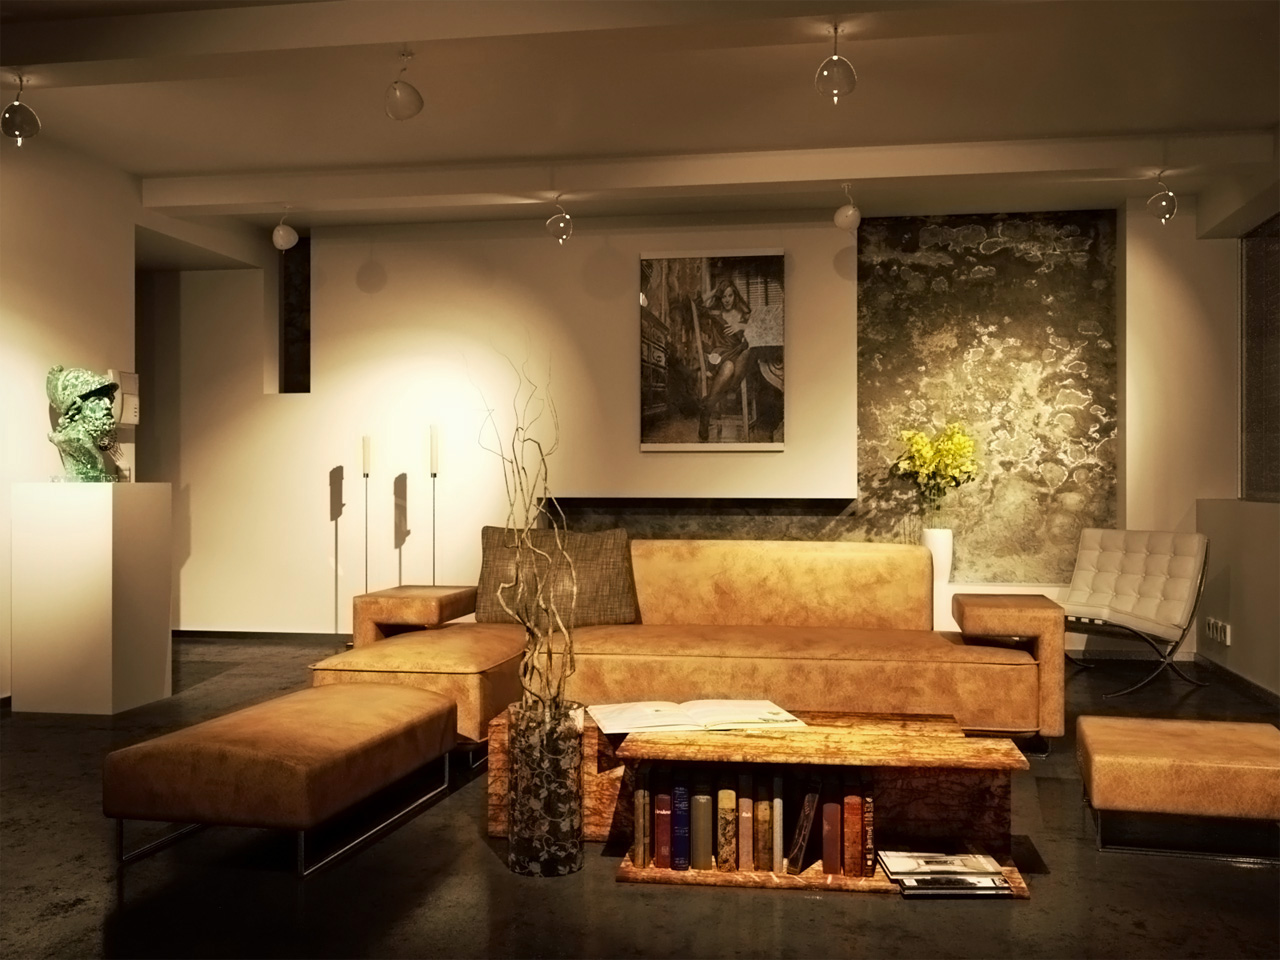 Living room night by brown eye architects on deviantart for Living room night